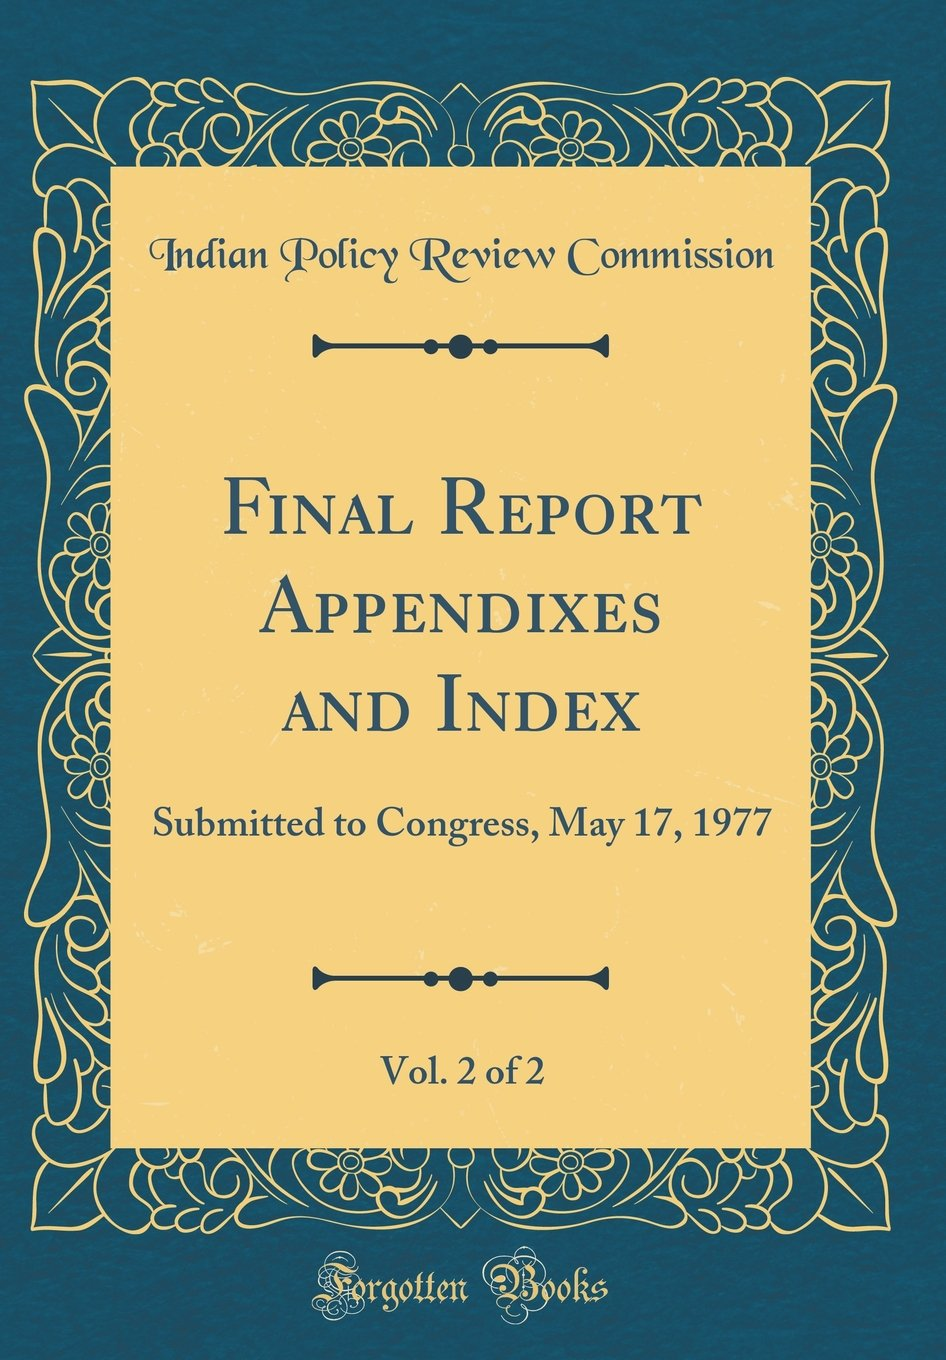 Final Report Appendixes and Index, Vol. 2 of 2: Submitted to Congress, May 17, 1977 (Classic Reprint) PDF